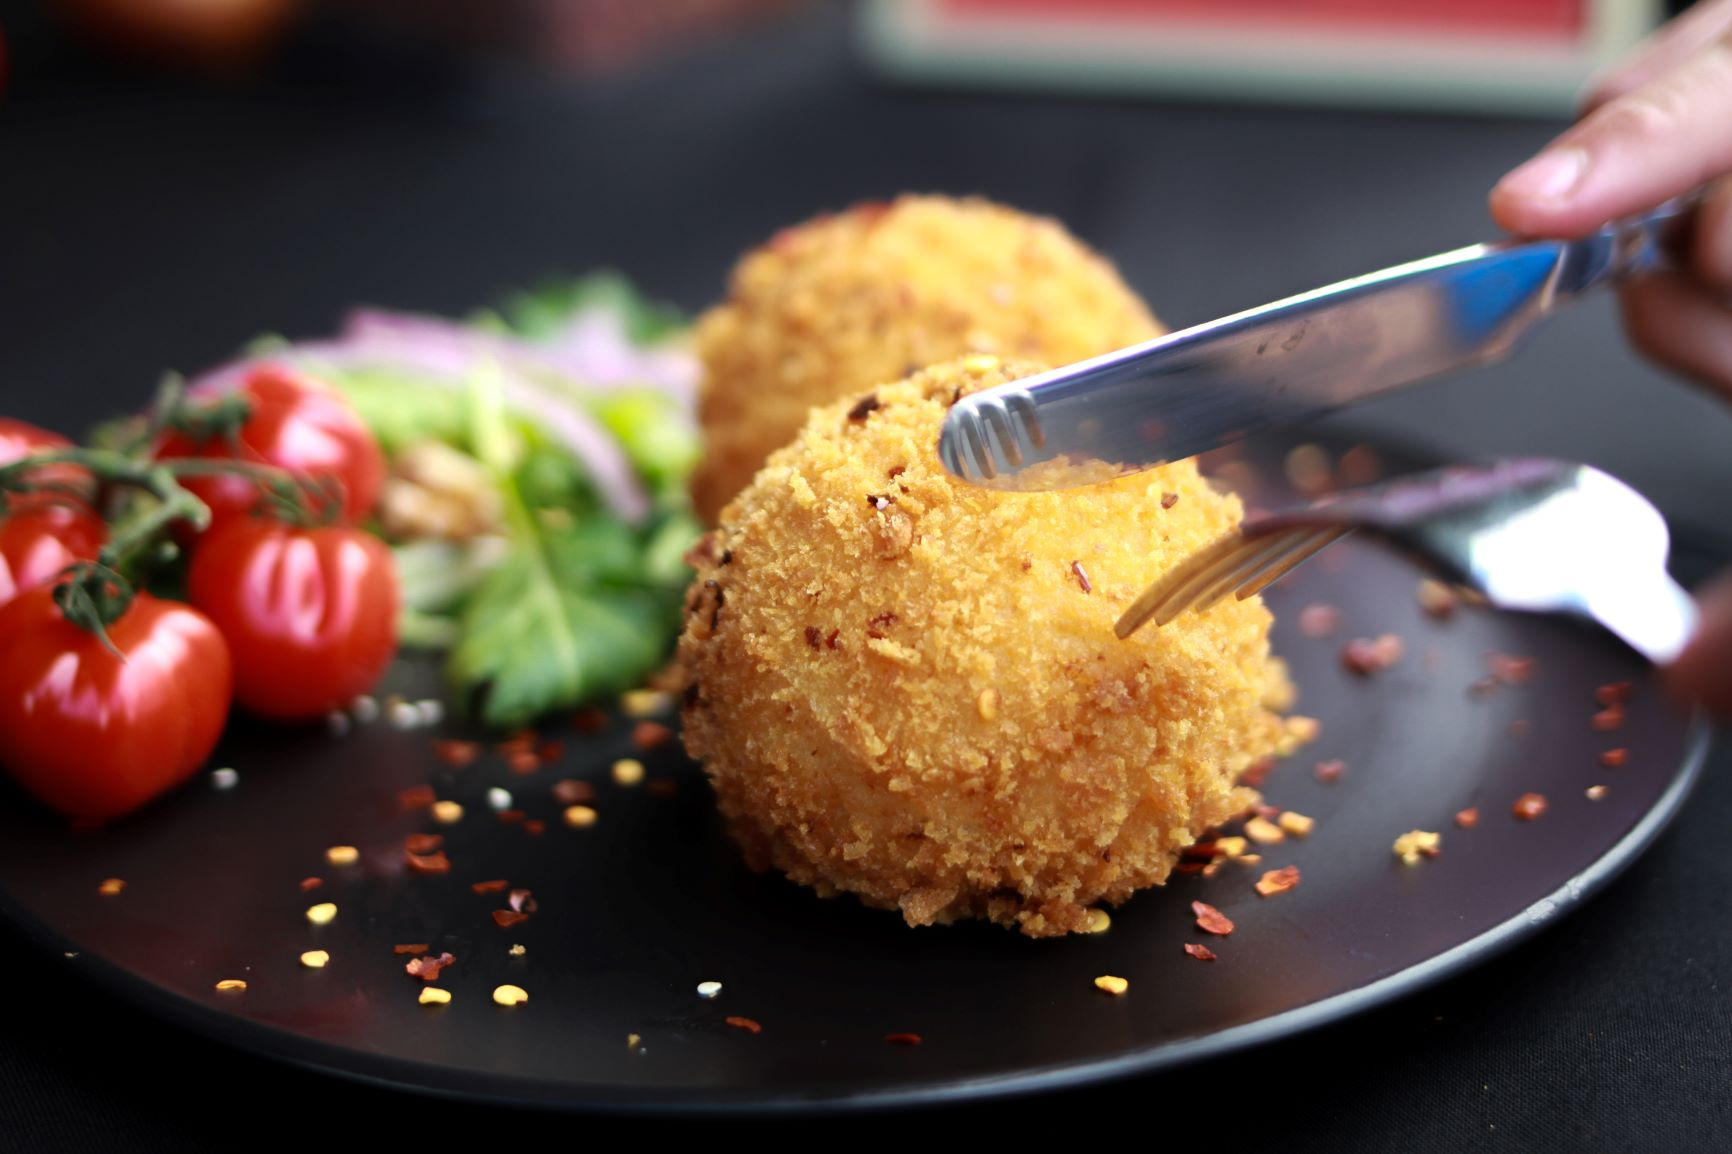 knife and fork about to cut into an arancini ball